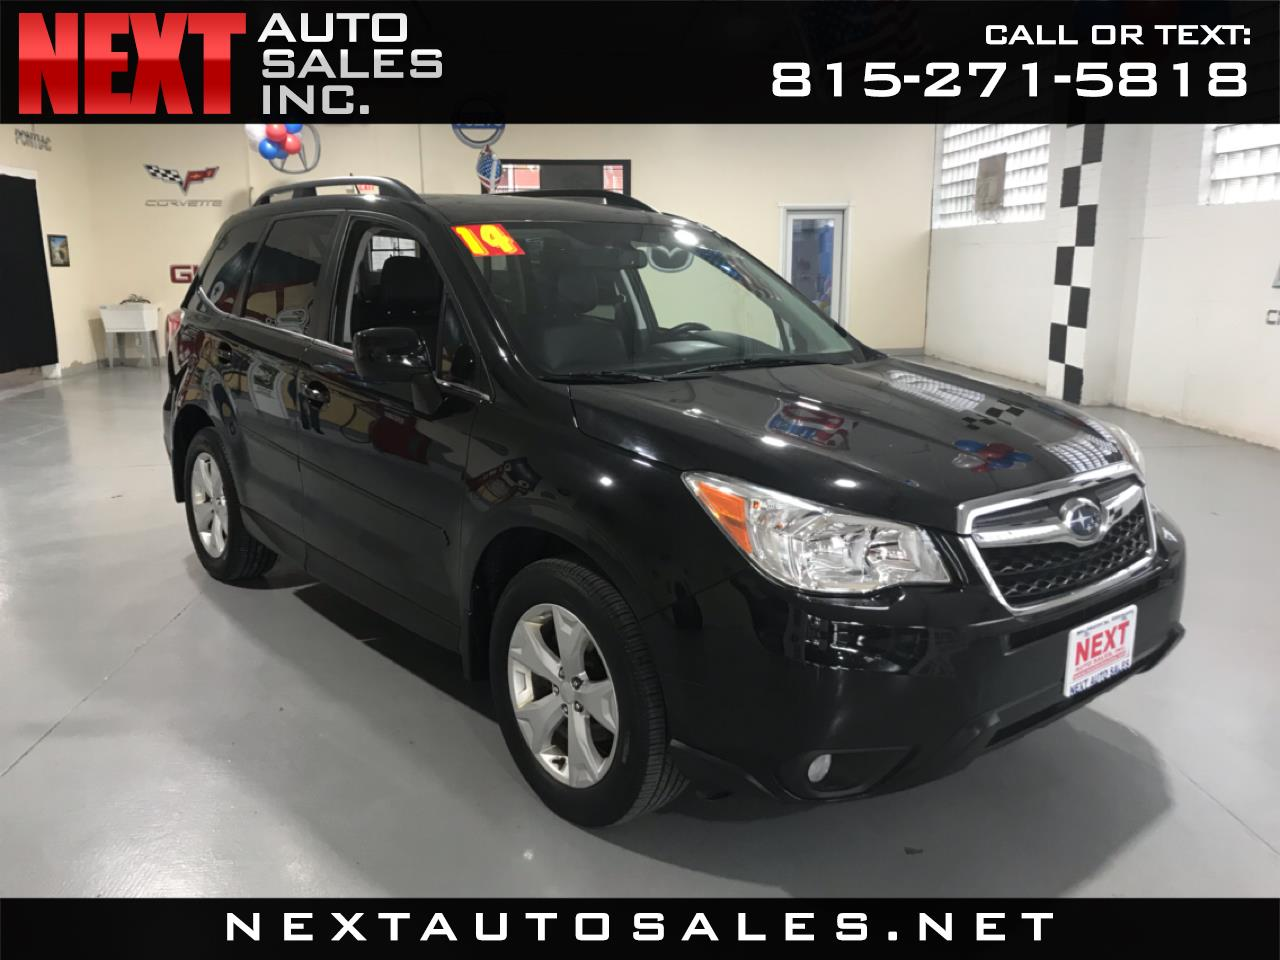 2014 Subaru Forester 4dr Auto 2.5i Limited PZEV